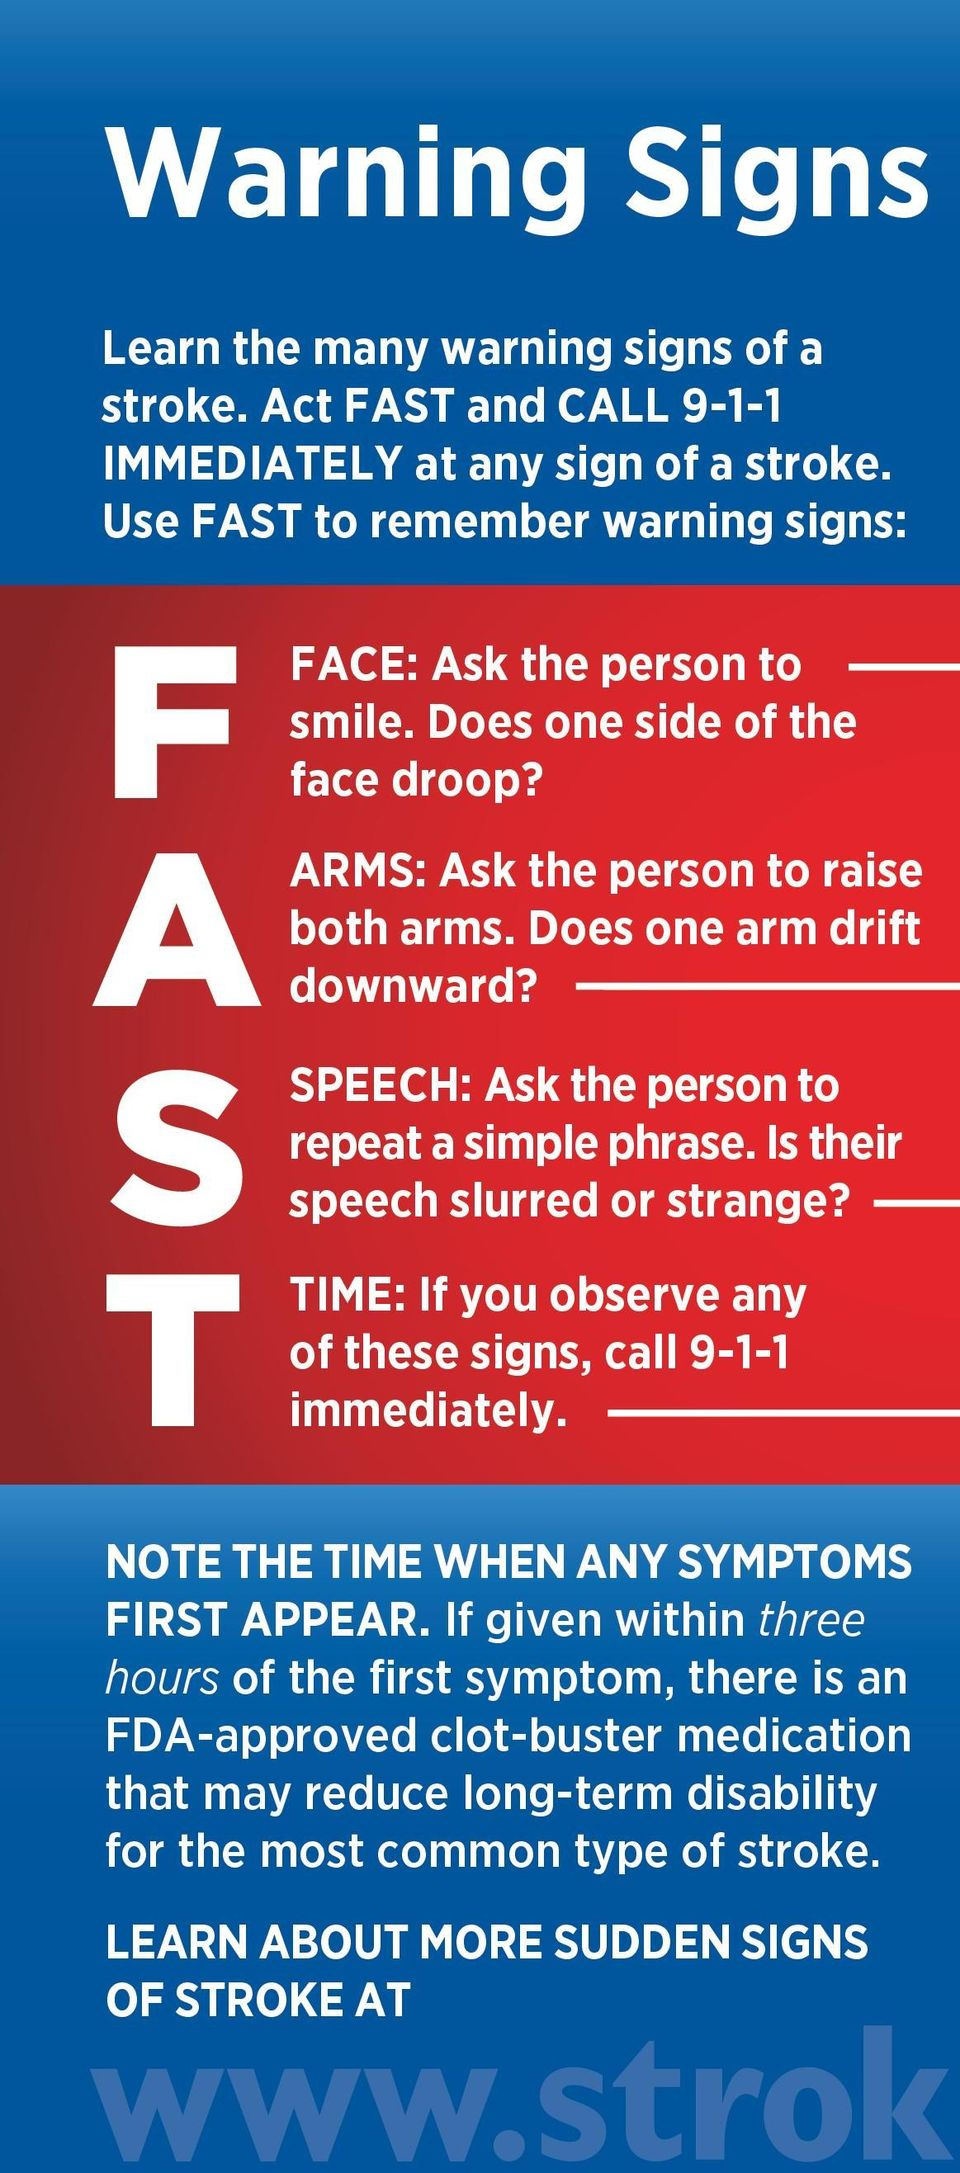 S SPEECH: Ask the person to repeat a simple phrase. Is their speech slurred or strange? T TIME: If you observe any of these signs, call 9-1-1 immediately.